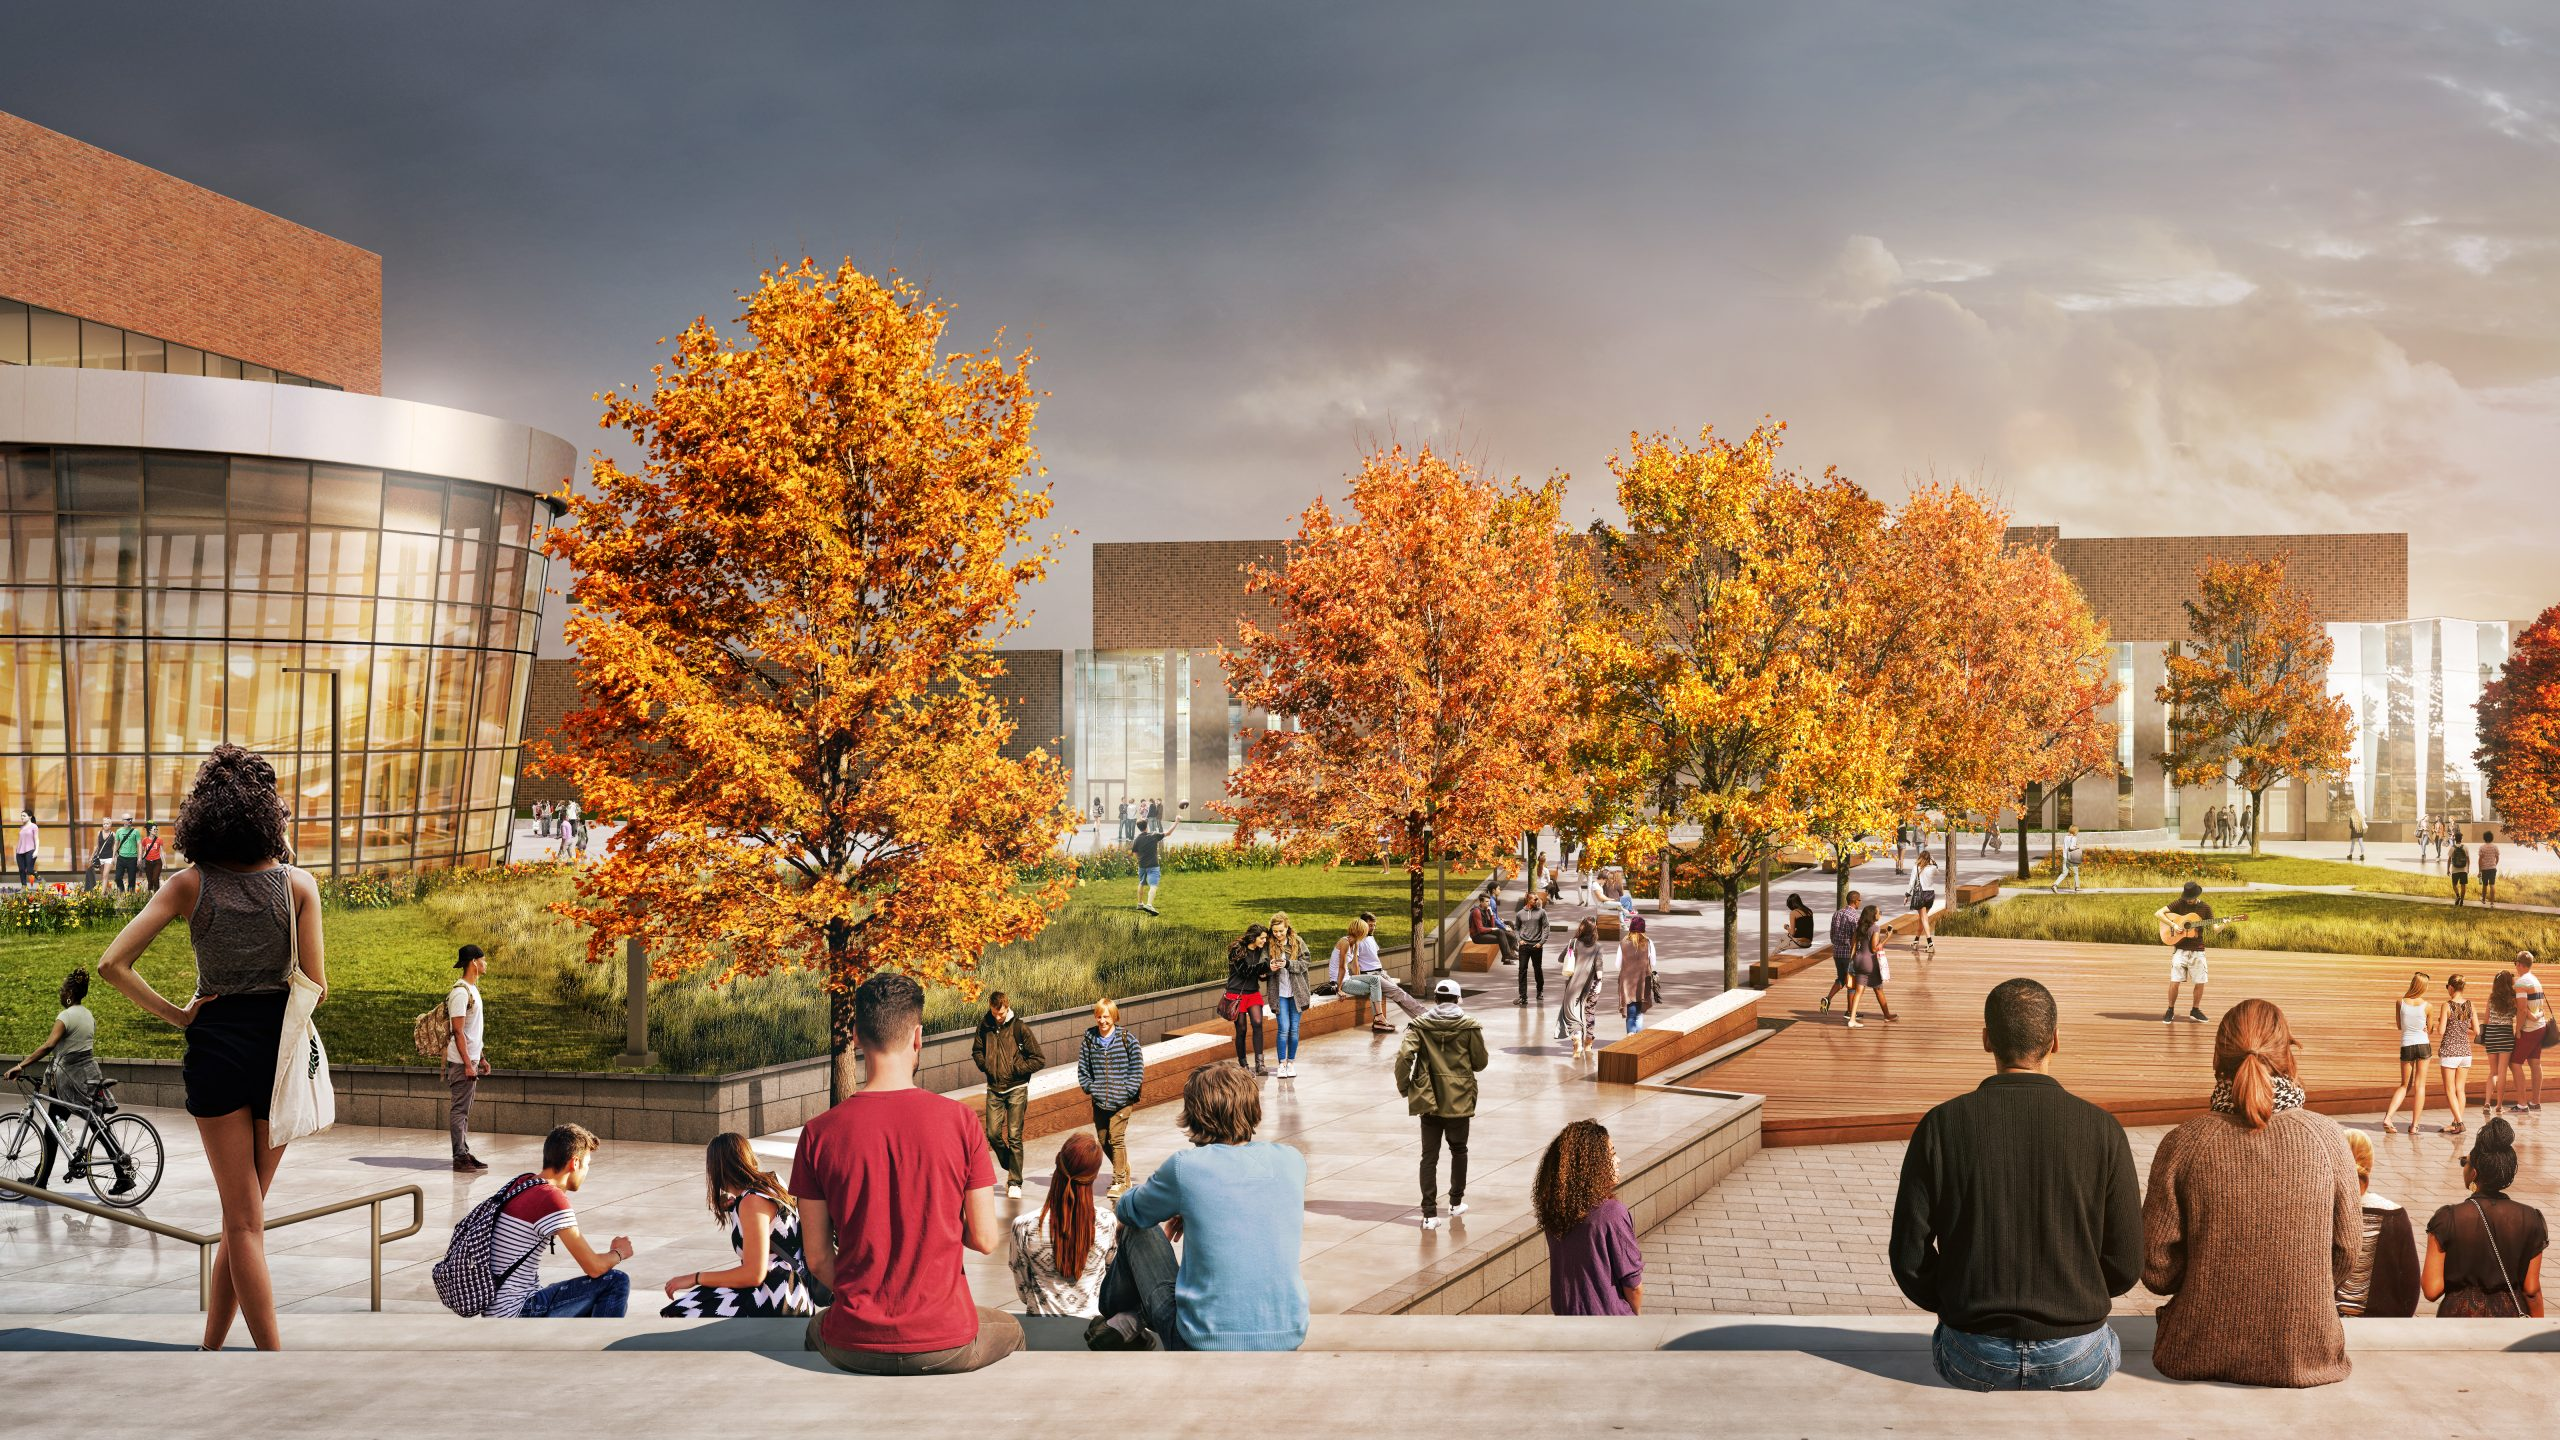 Rendering of people sitting at Lansing Community College Quad Project Proposal in Michigan Urban Design